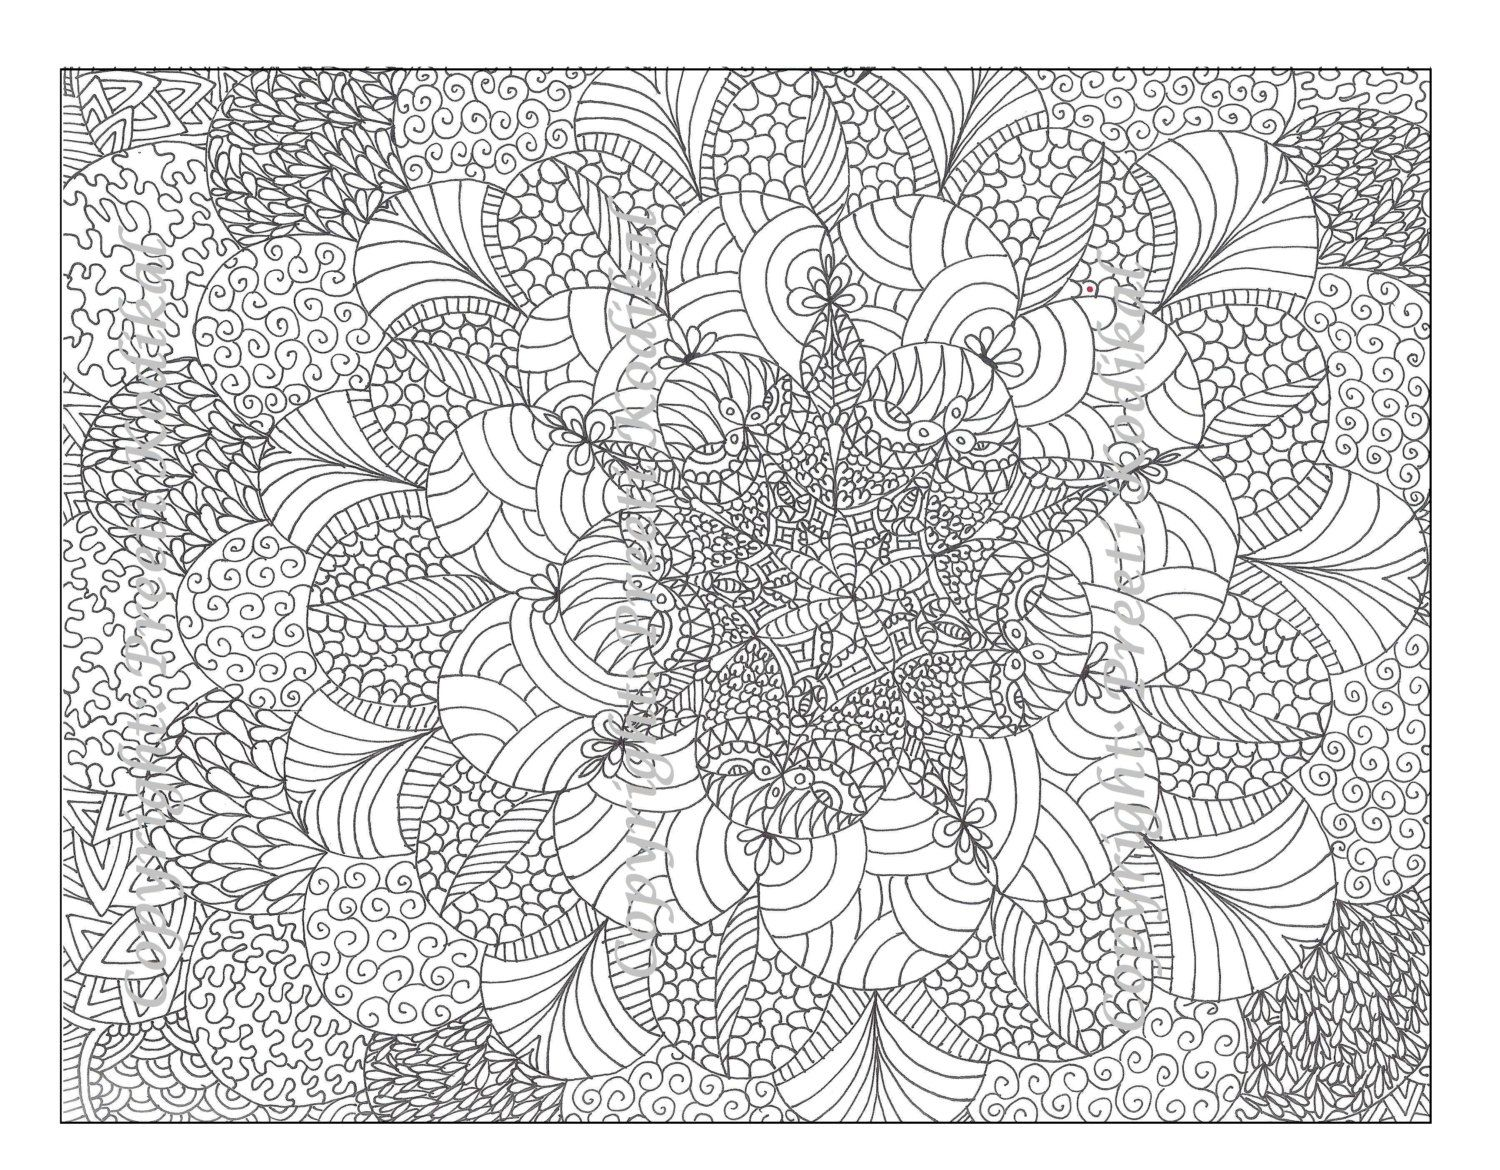 Hard kaleidoscope coloring pages - Free Difficult Coloring Pages Miakenas Net